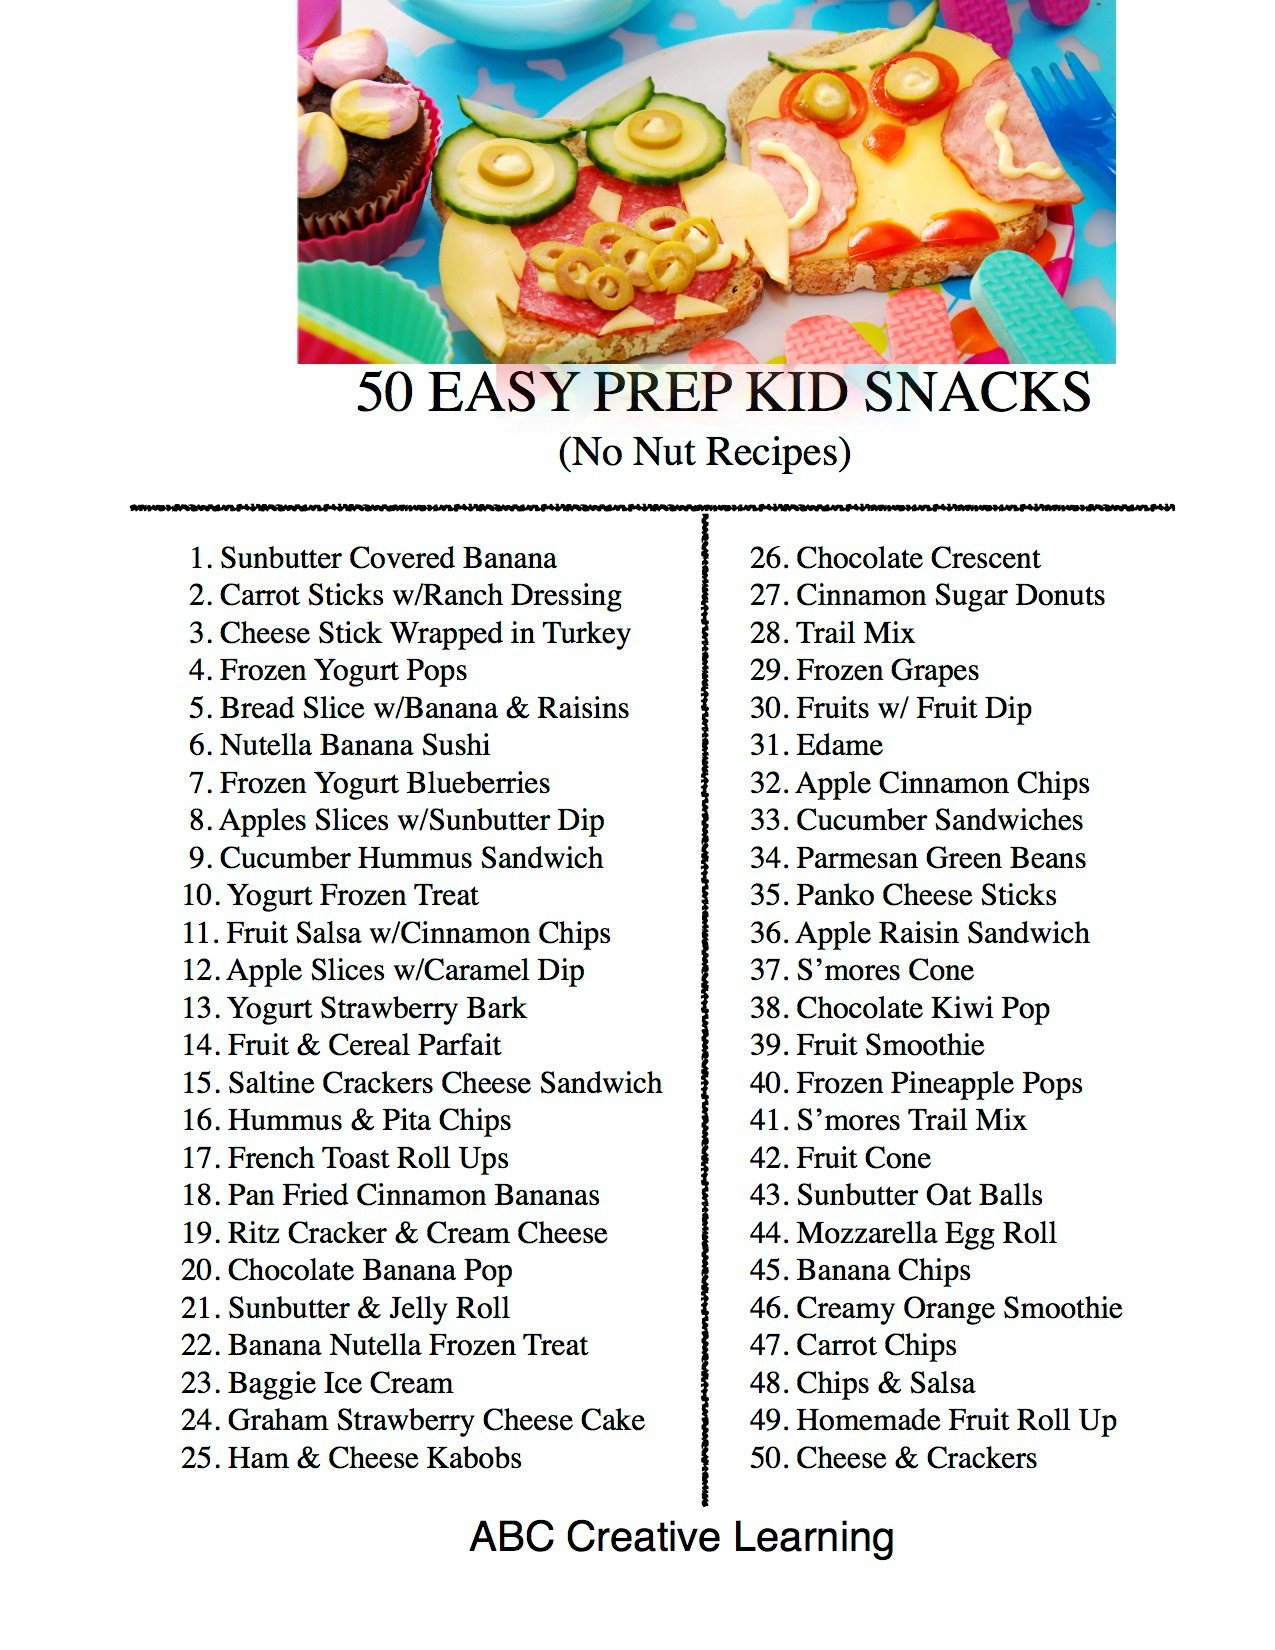 50 Easy Prep Kid Snack Ideas + Printable